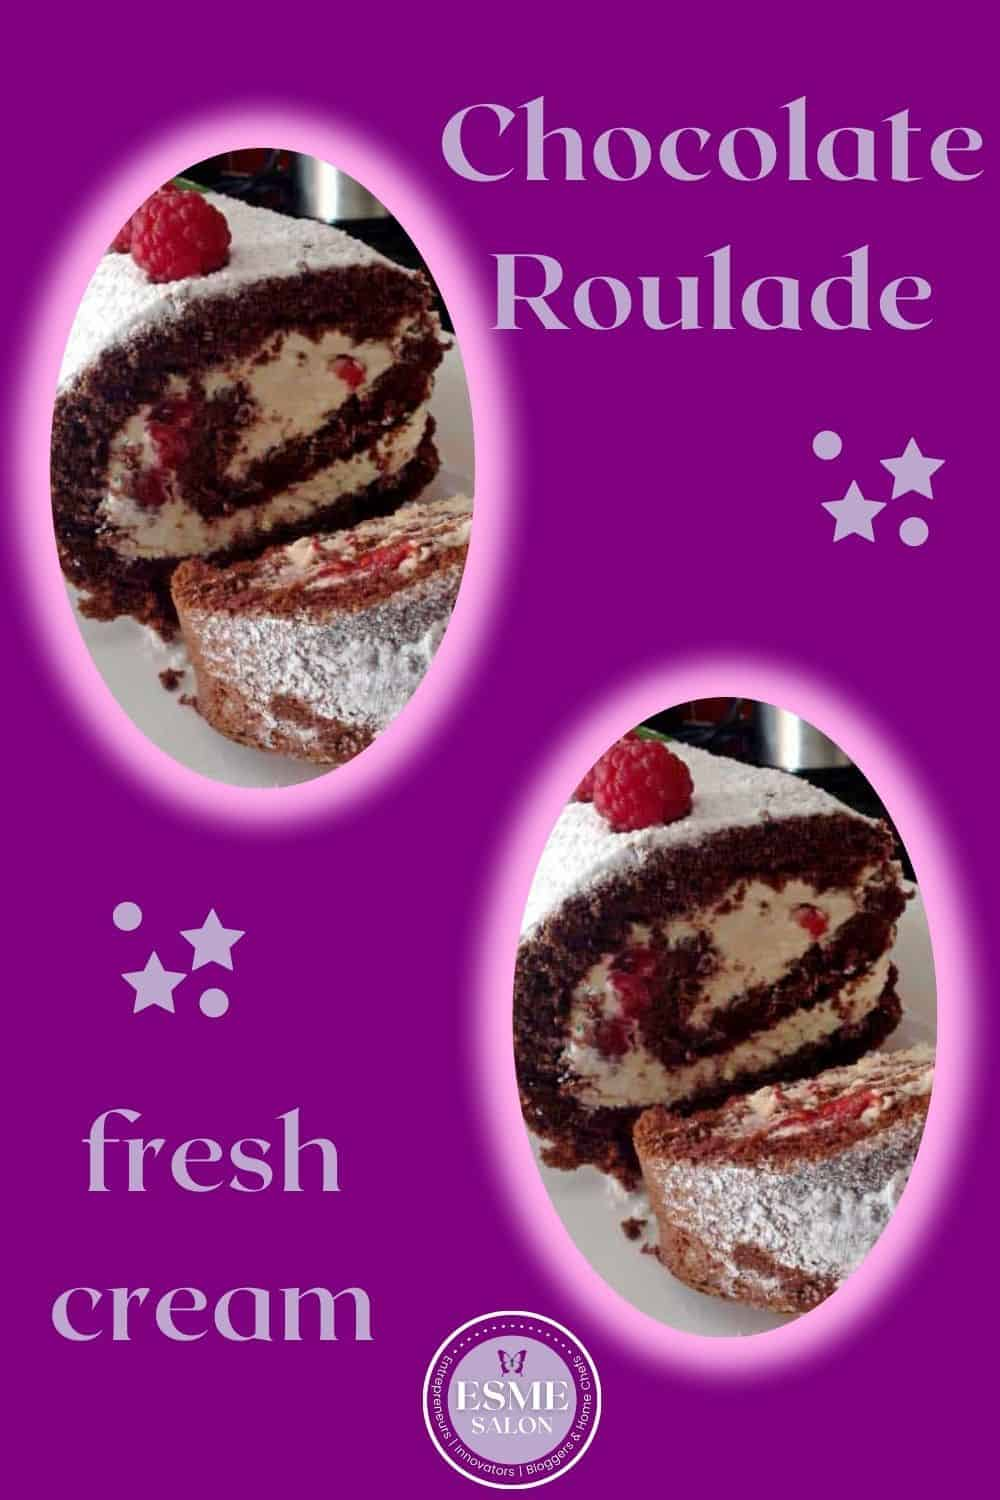 2 rolls of Chocolate Roulade